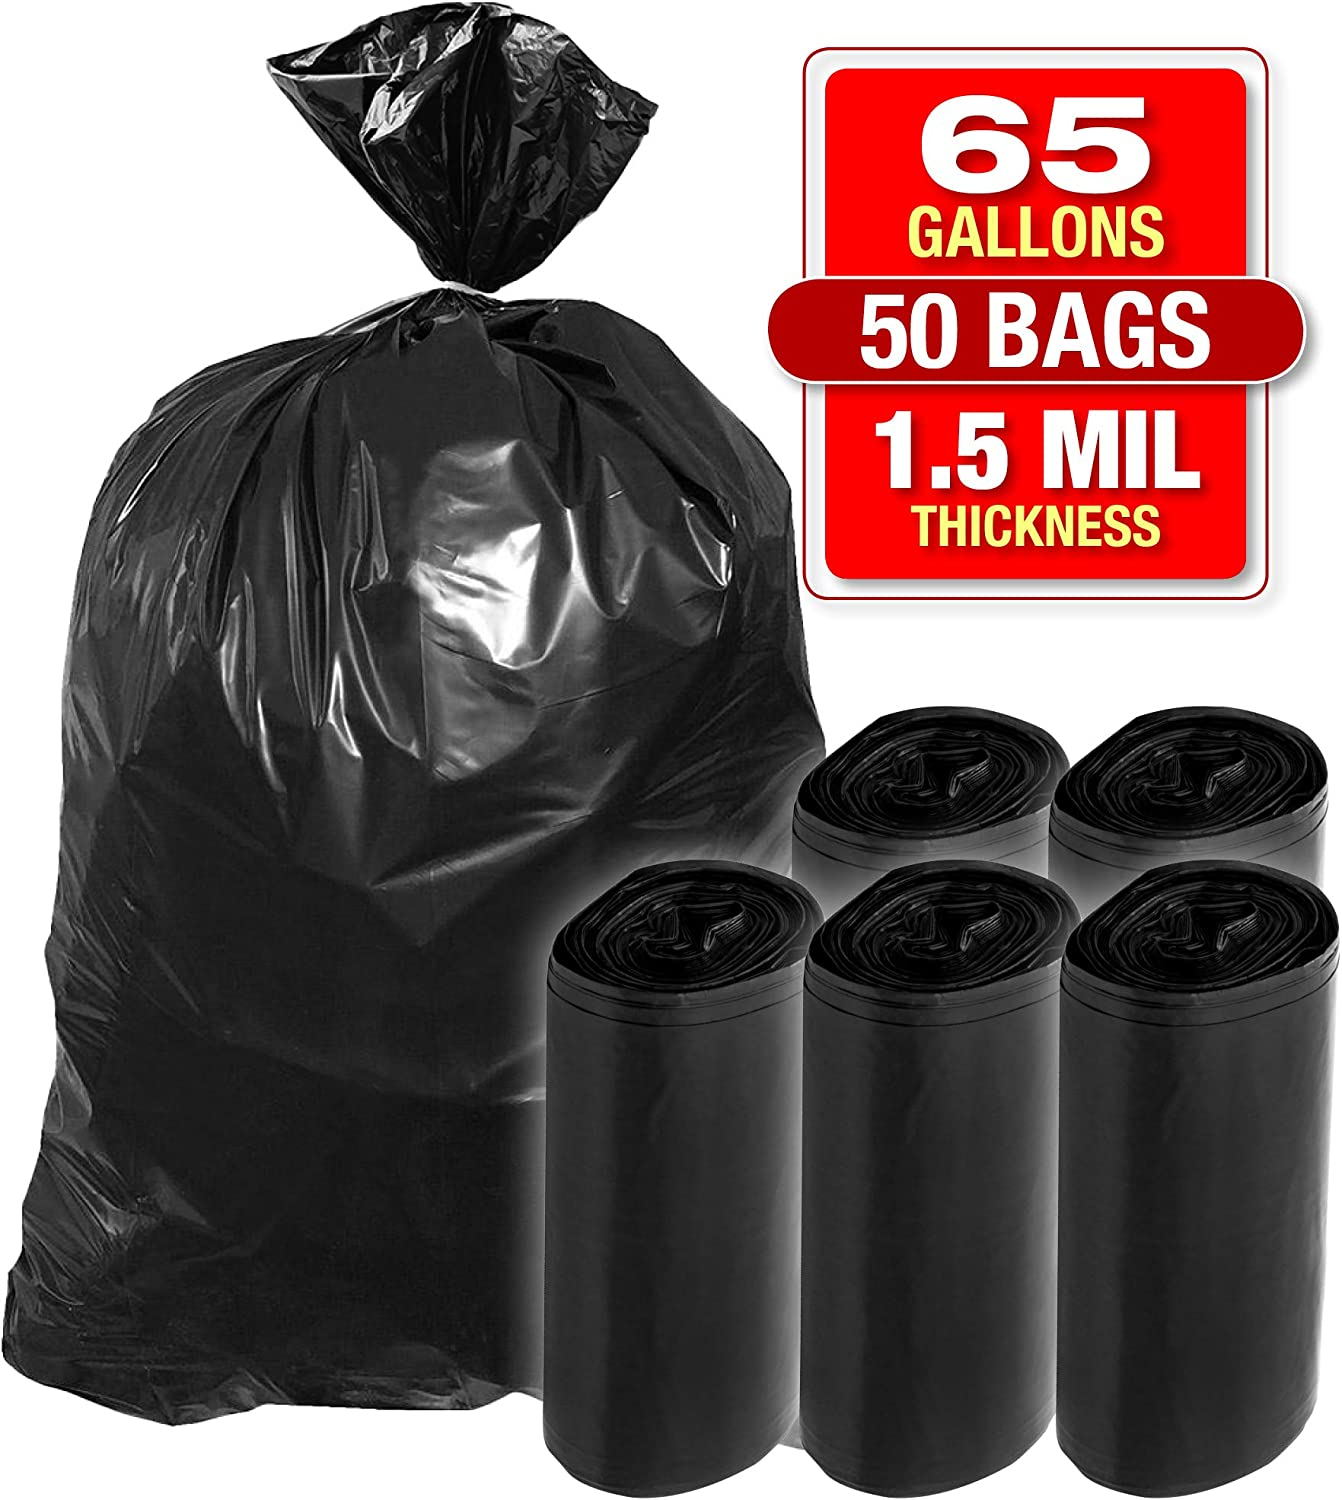 "X-Large 65 Gallon Black Trash Bags - 50 Pack Heavy Duty Bags for Garbage, Storage - 1.5 Mil Thick, 50""Wx48""H Industrial Grade Trash Bags for Construction, Yard Work, Commercial Use - by Tougher Goods"